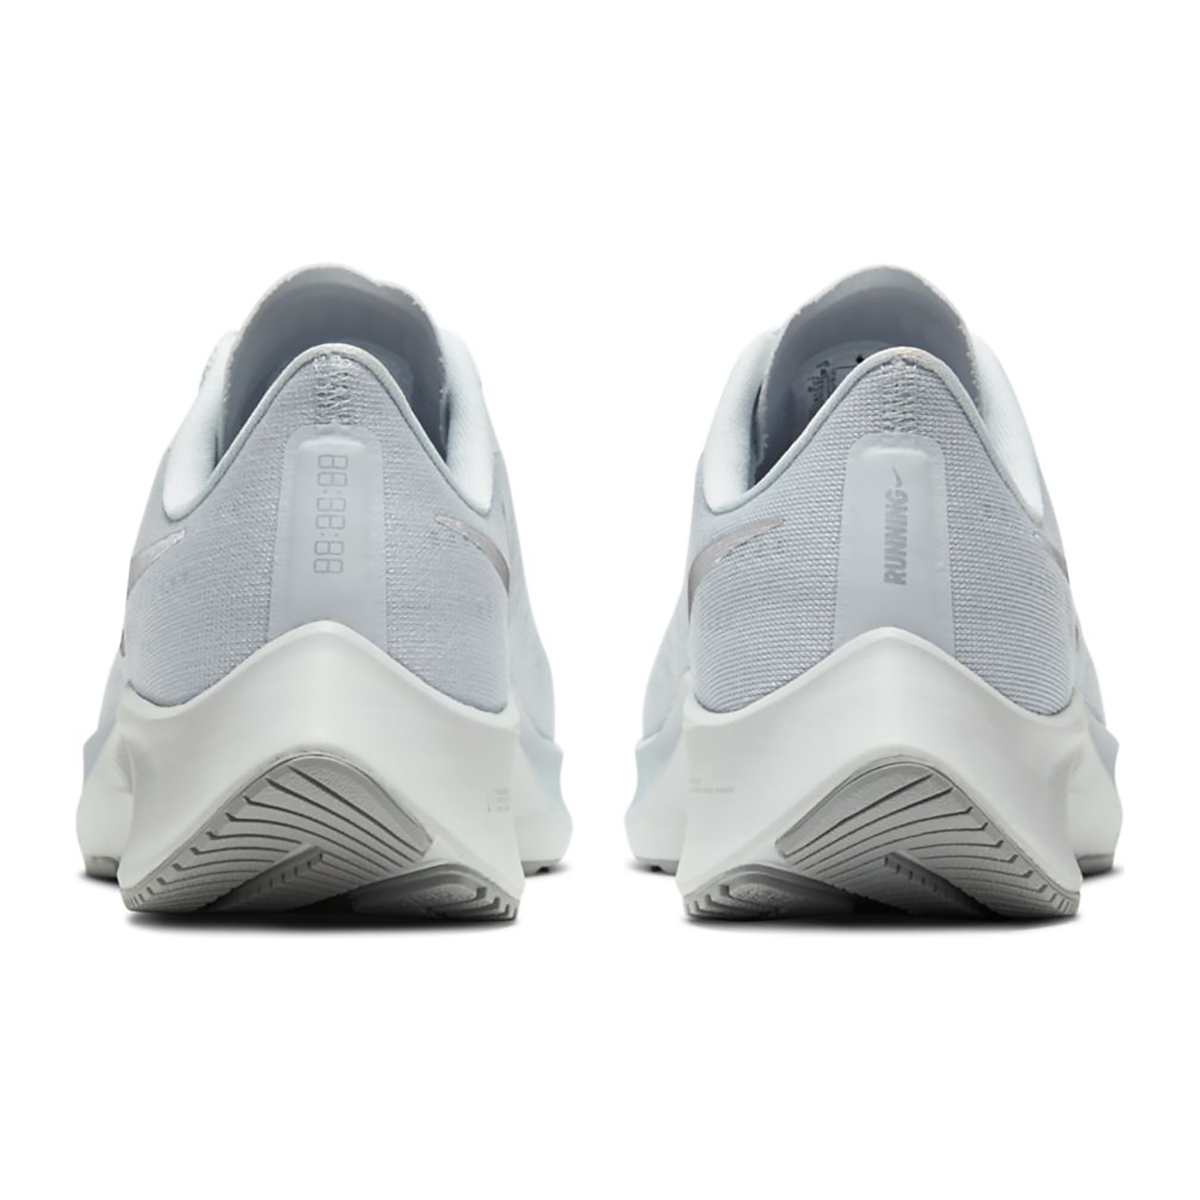 Women's Nike Air Zoom Pegasus 37 Running Shoe - Color: Pure Platinum/Silver/Wolf Grey - Size: 5 - Width: Regular, Pure Platinum/Silver/Wolf Grey, large, image 4